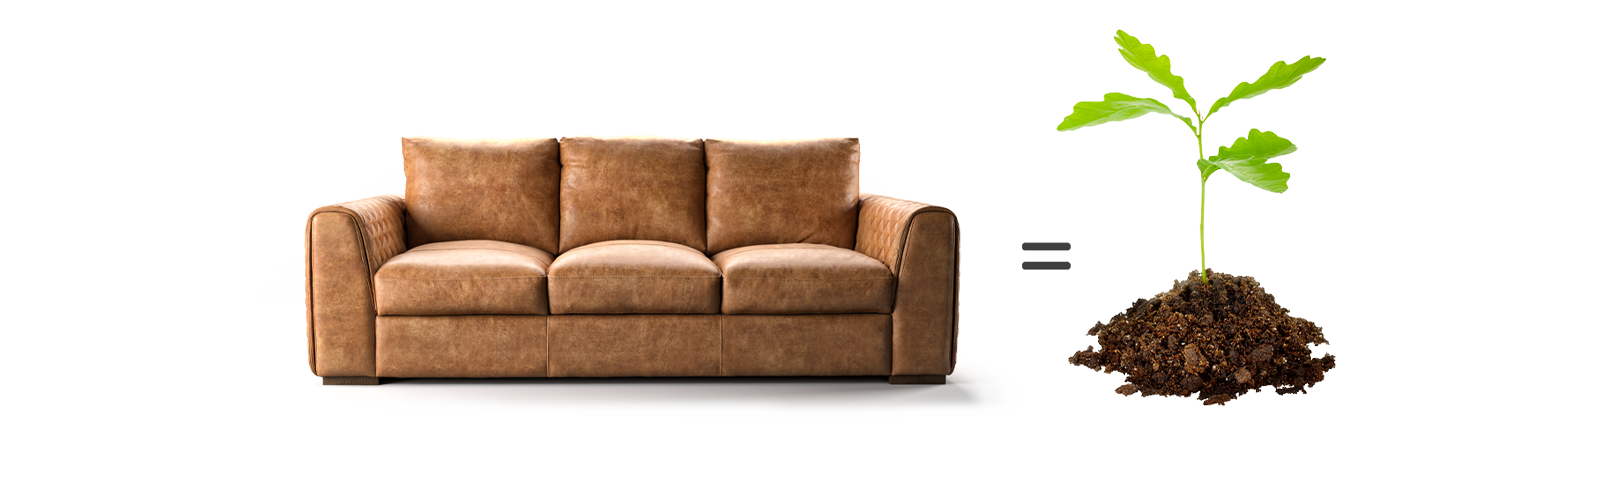 Sofology Lille floral fabric sofa